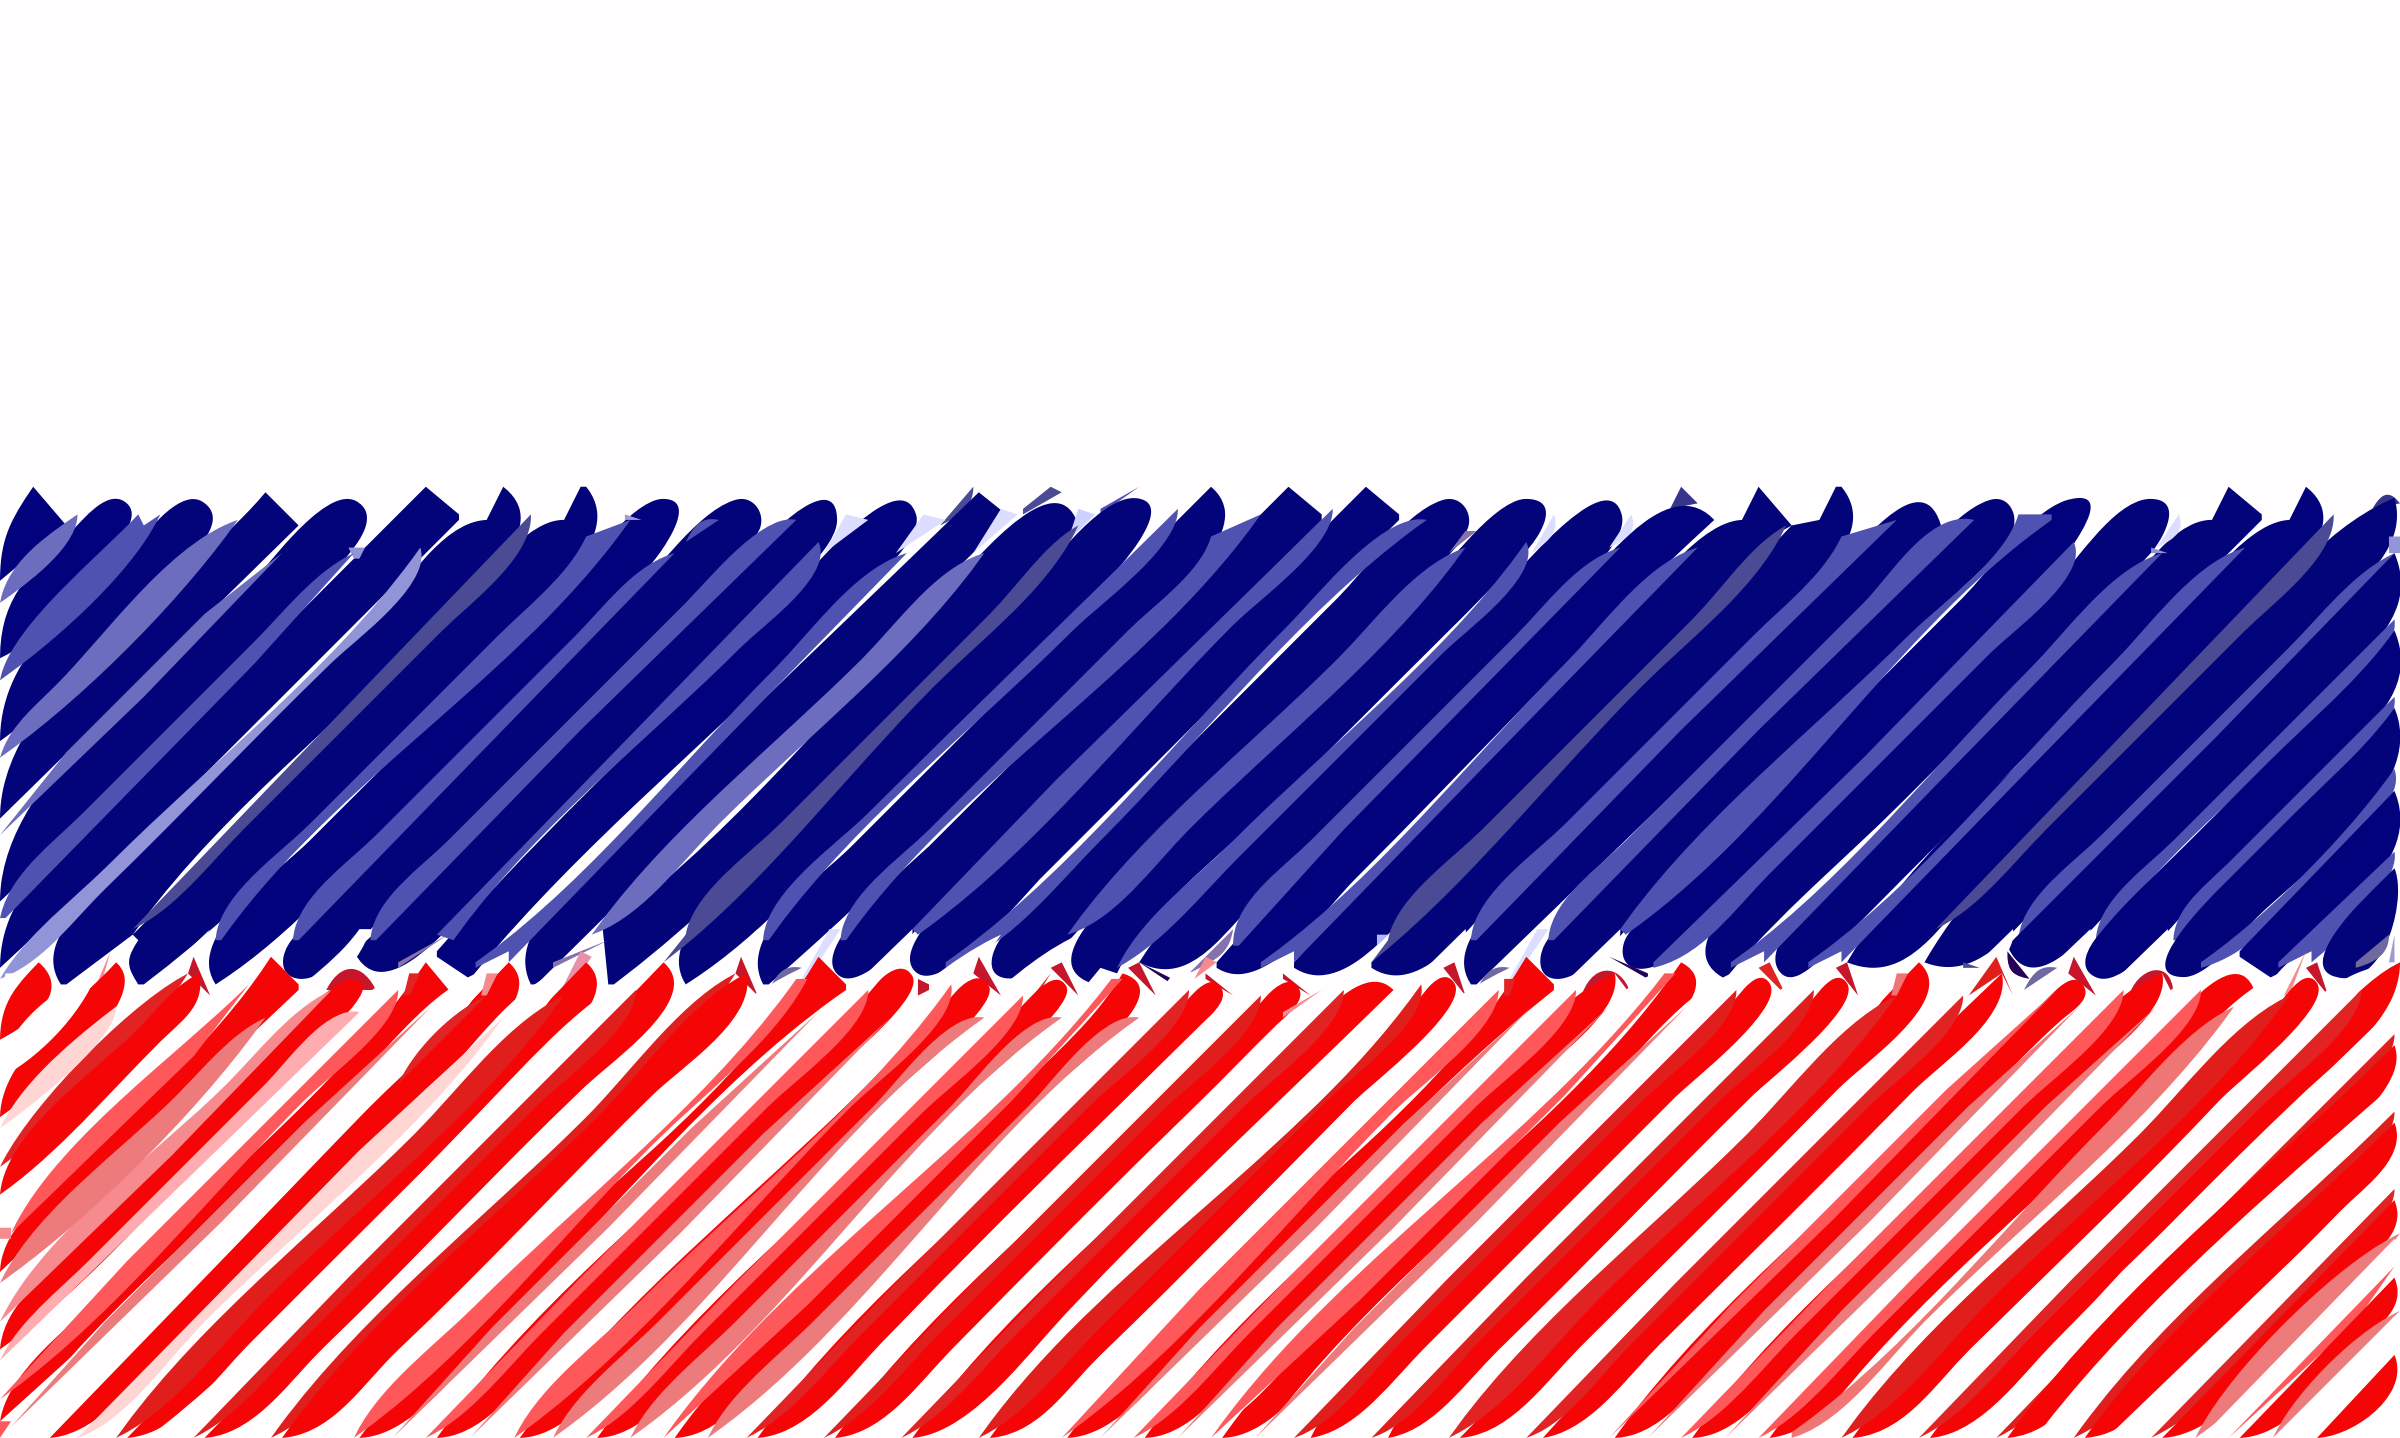 Russia flag linear by Joesph